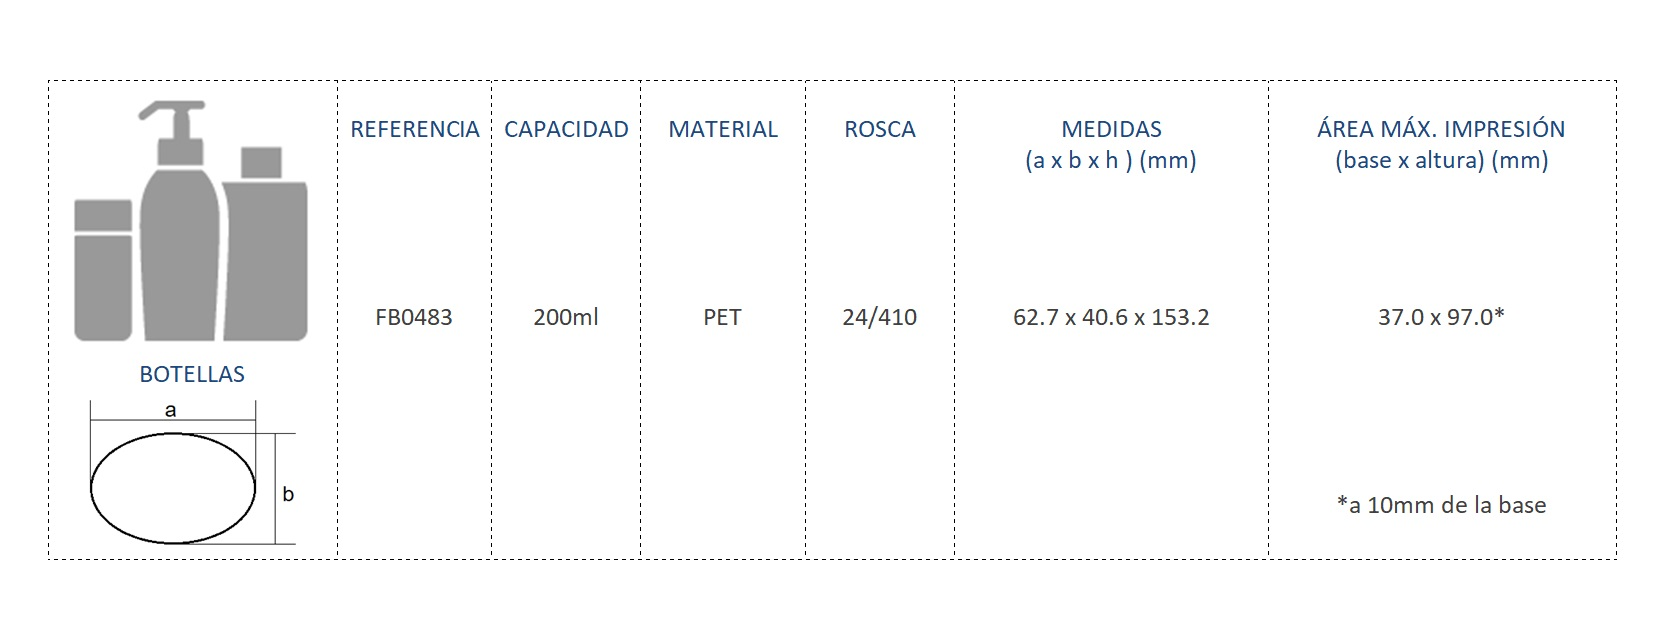 Cuadro de materiales botella FB0483